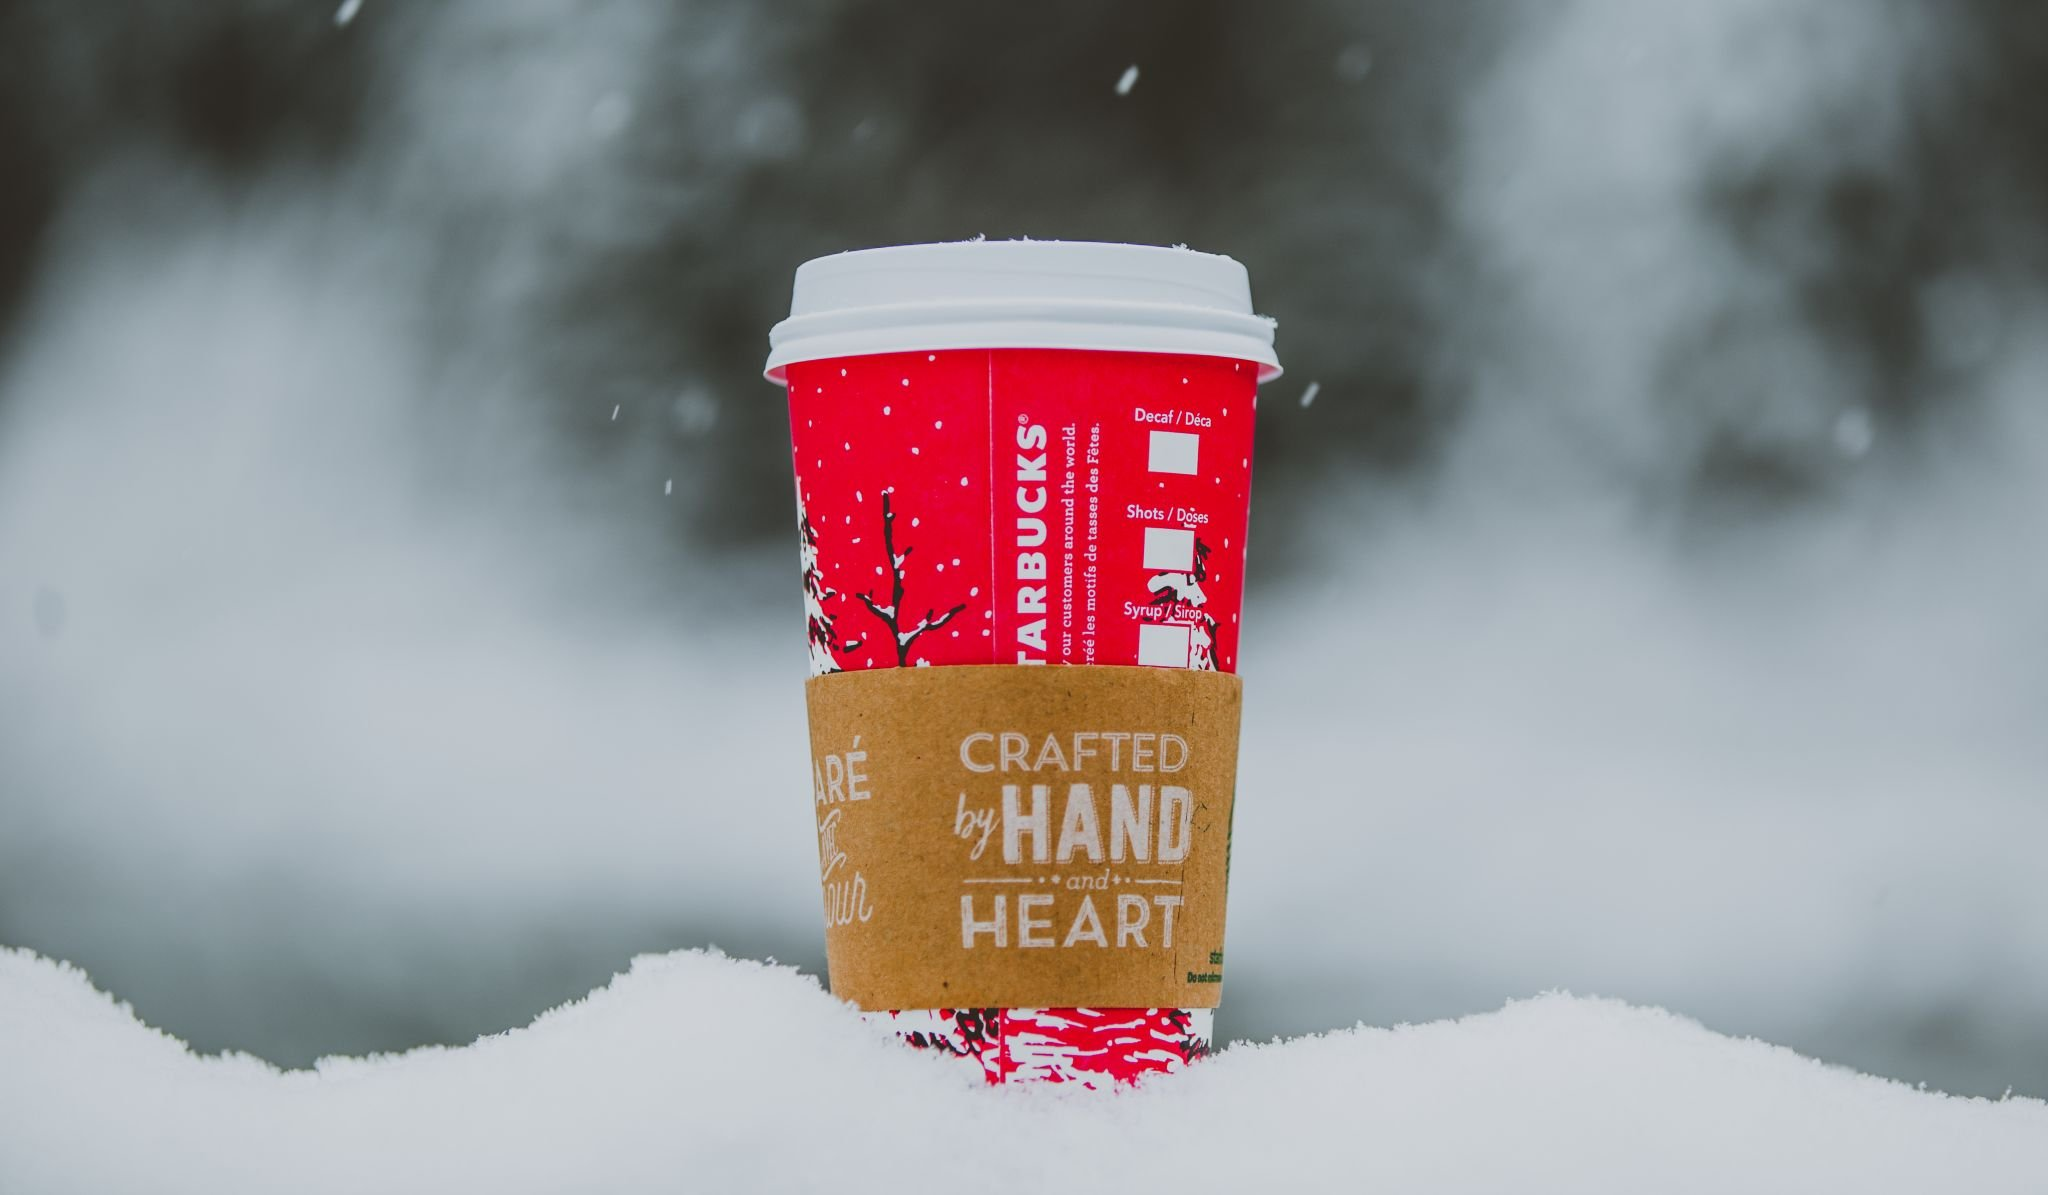 save cash for Christmas - red take-away coffee cup on snow